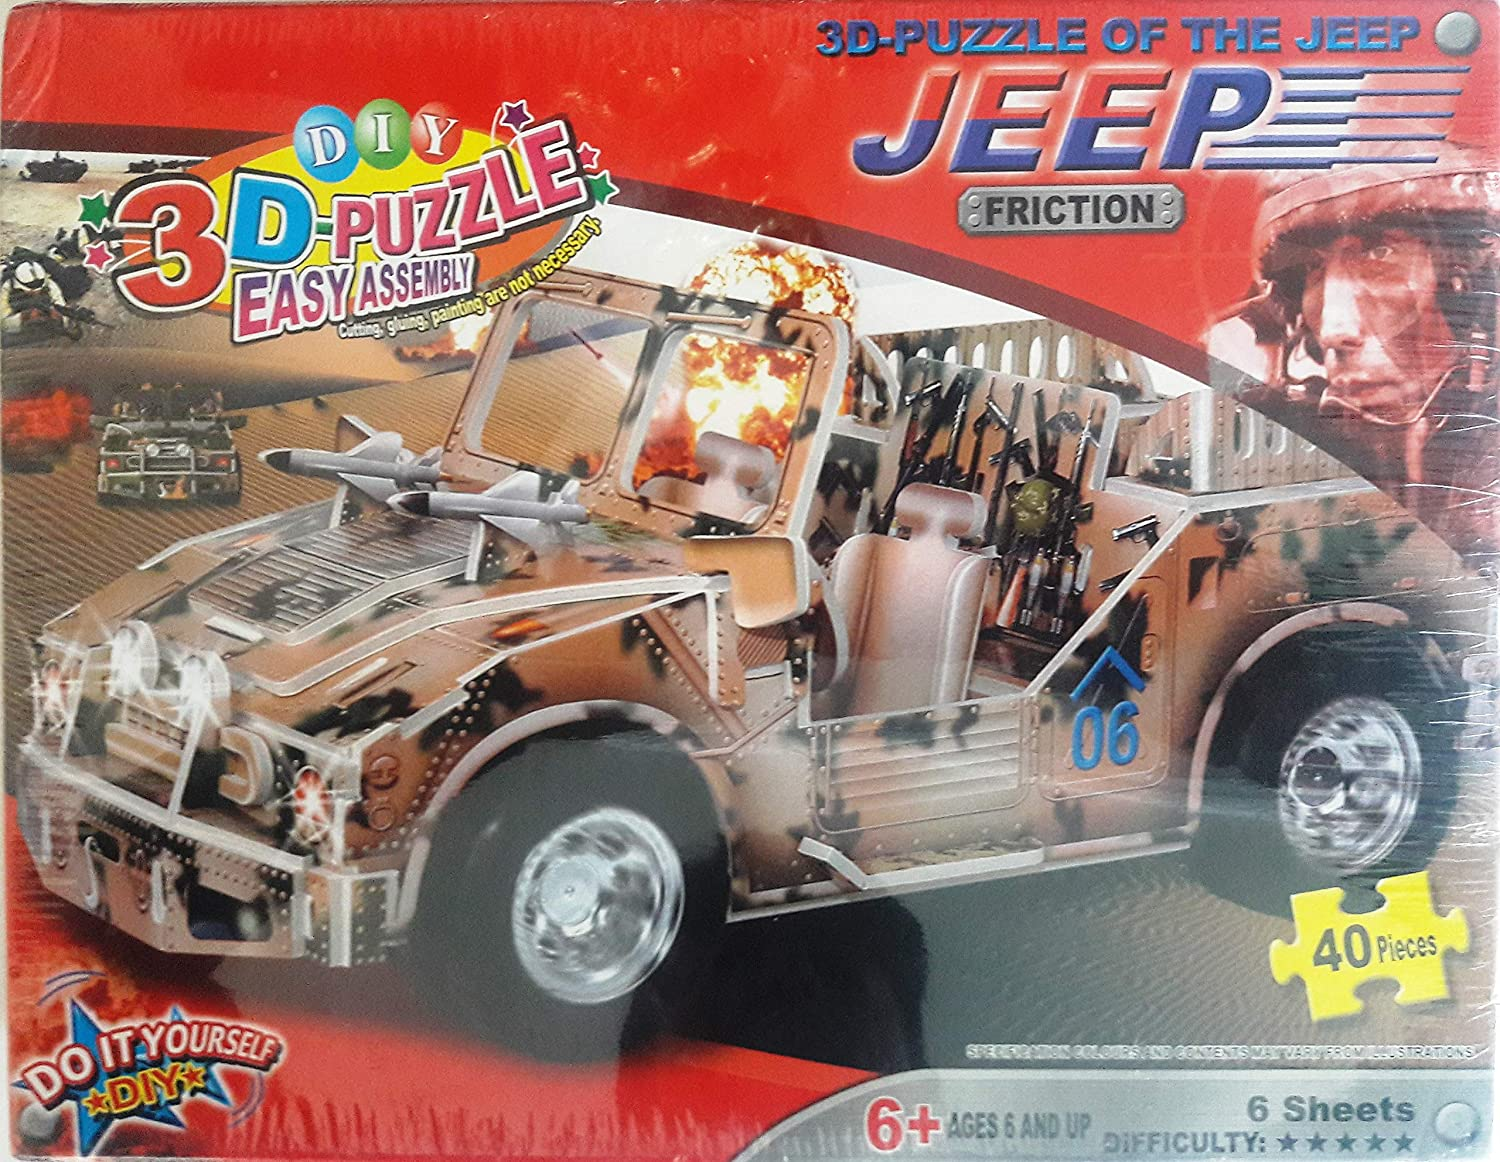 DIY 3-D Puzzle of the Jeep Friction Do It Yourself WD2505